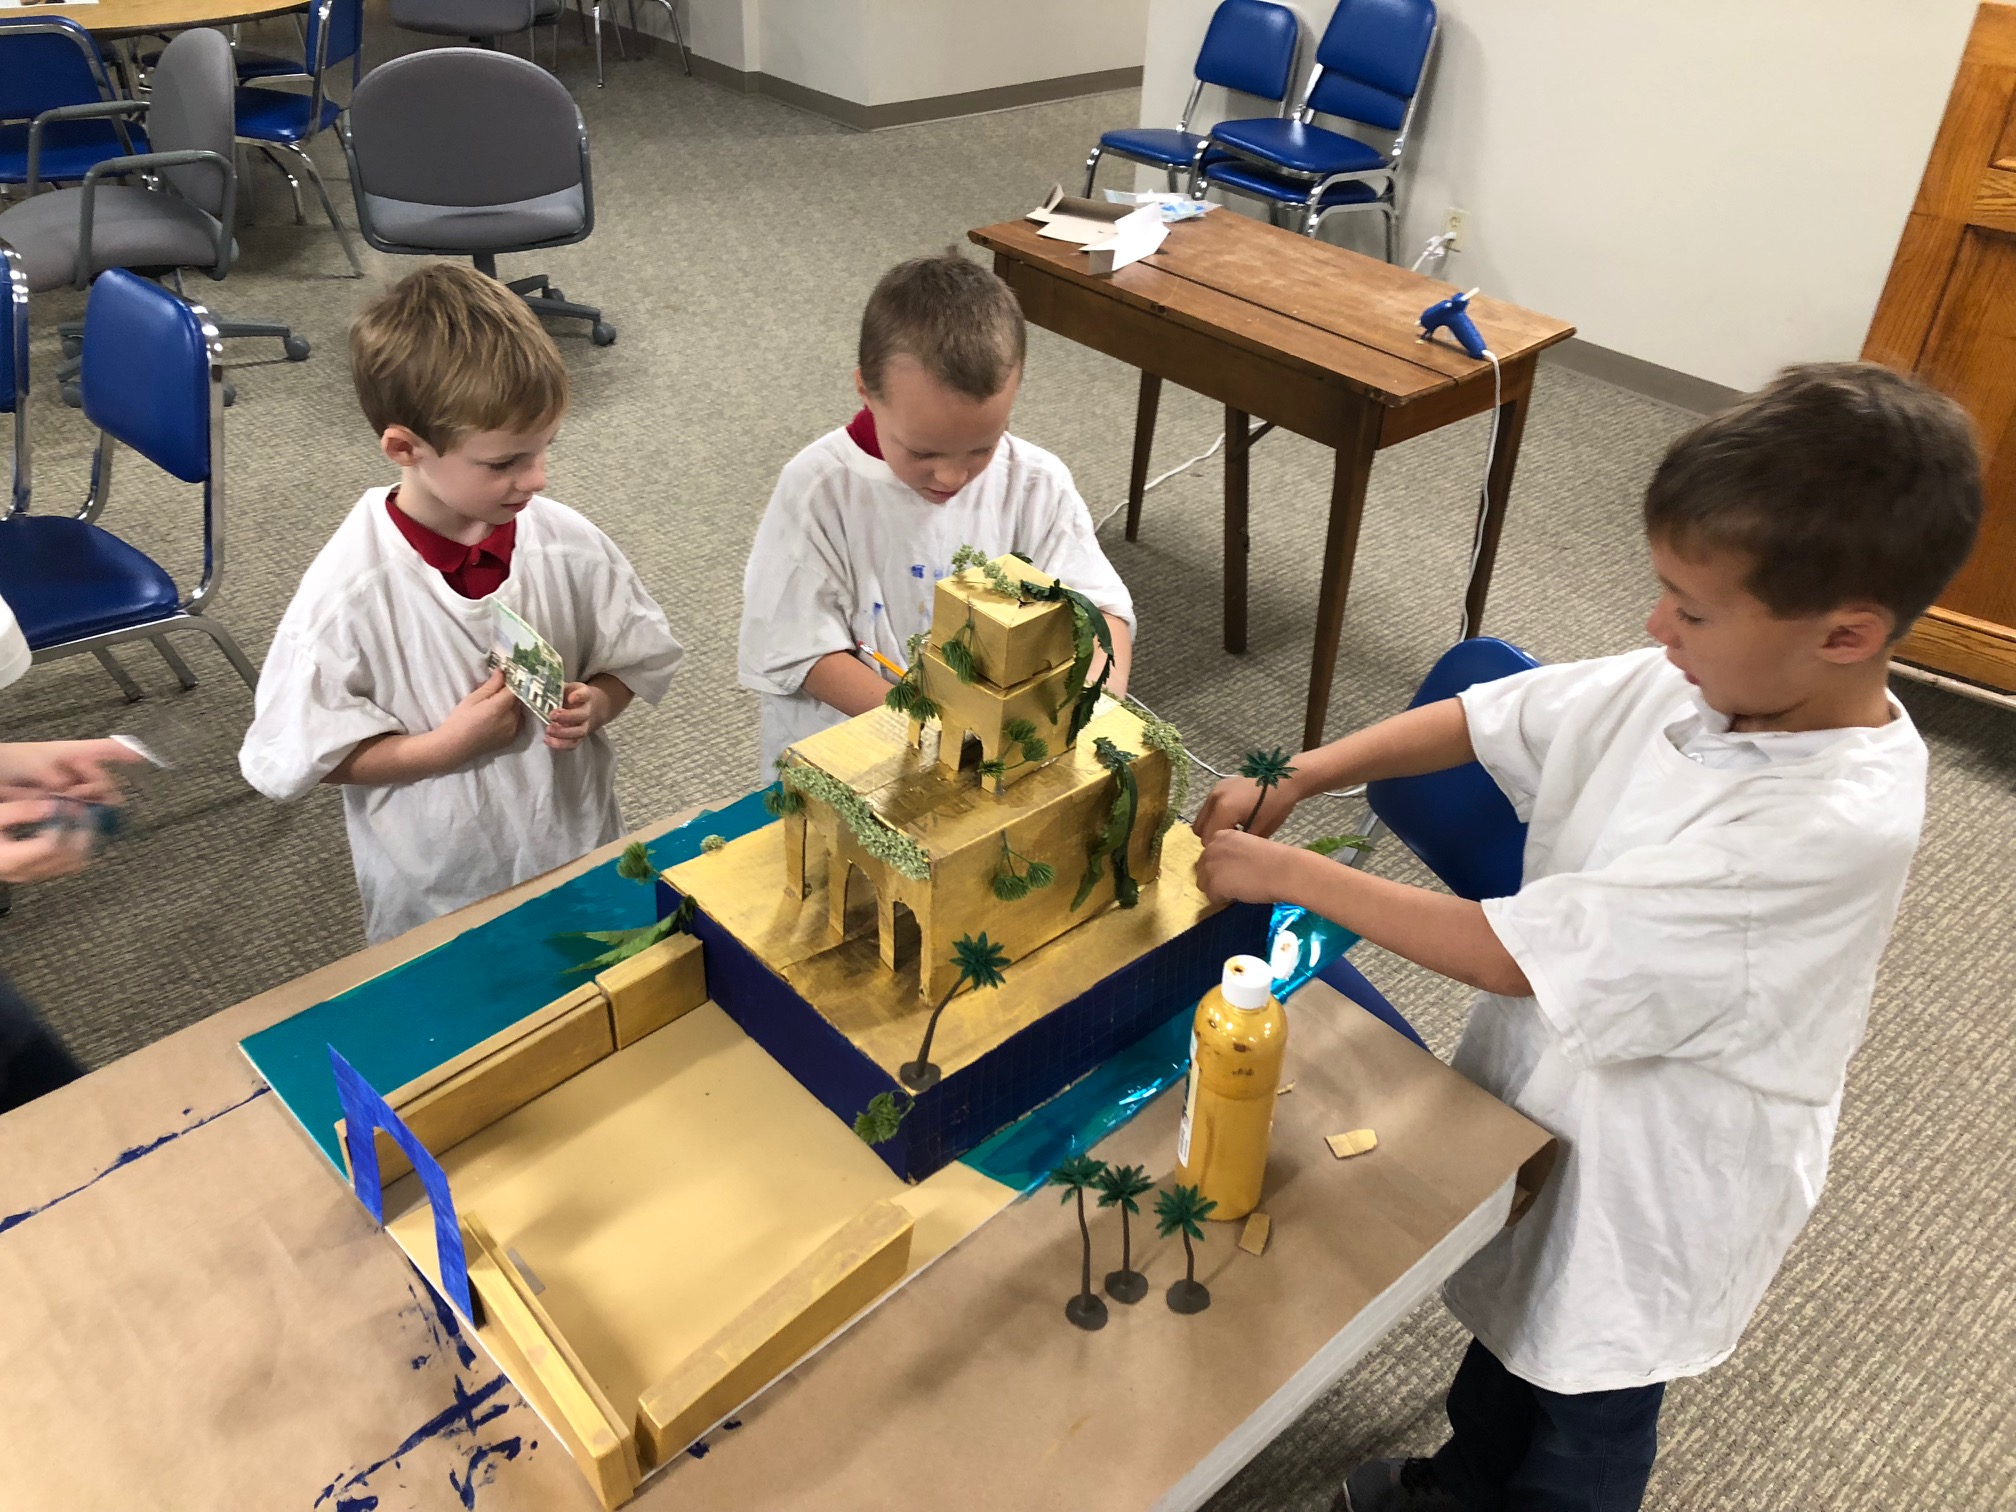 Students work together to create a diorama of the Hanging Gardens of Babylon in art class. The curriculum at STCA works in cycle, so children encounter one era -Aancient, Medieval, or Modern - across disciplines and ages.